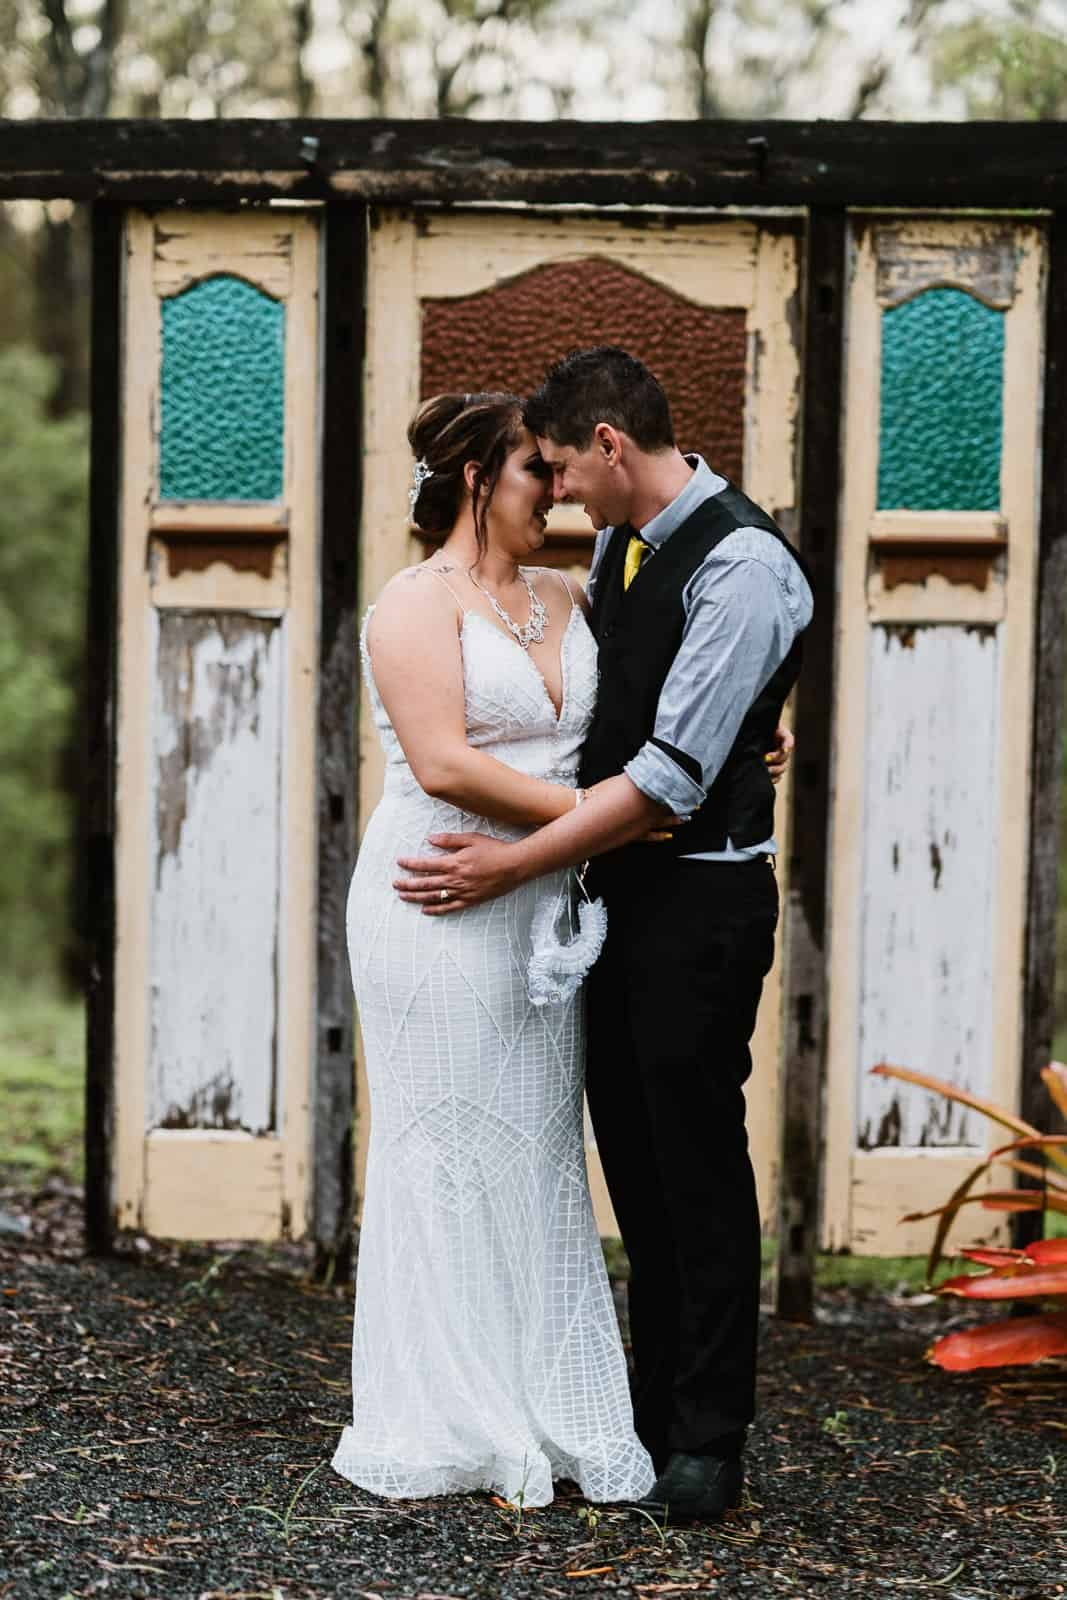 Wedding couple in front of old doors